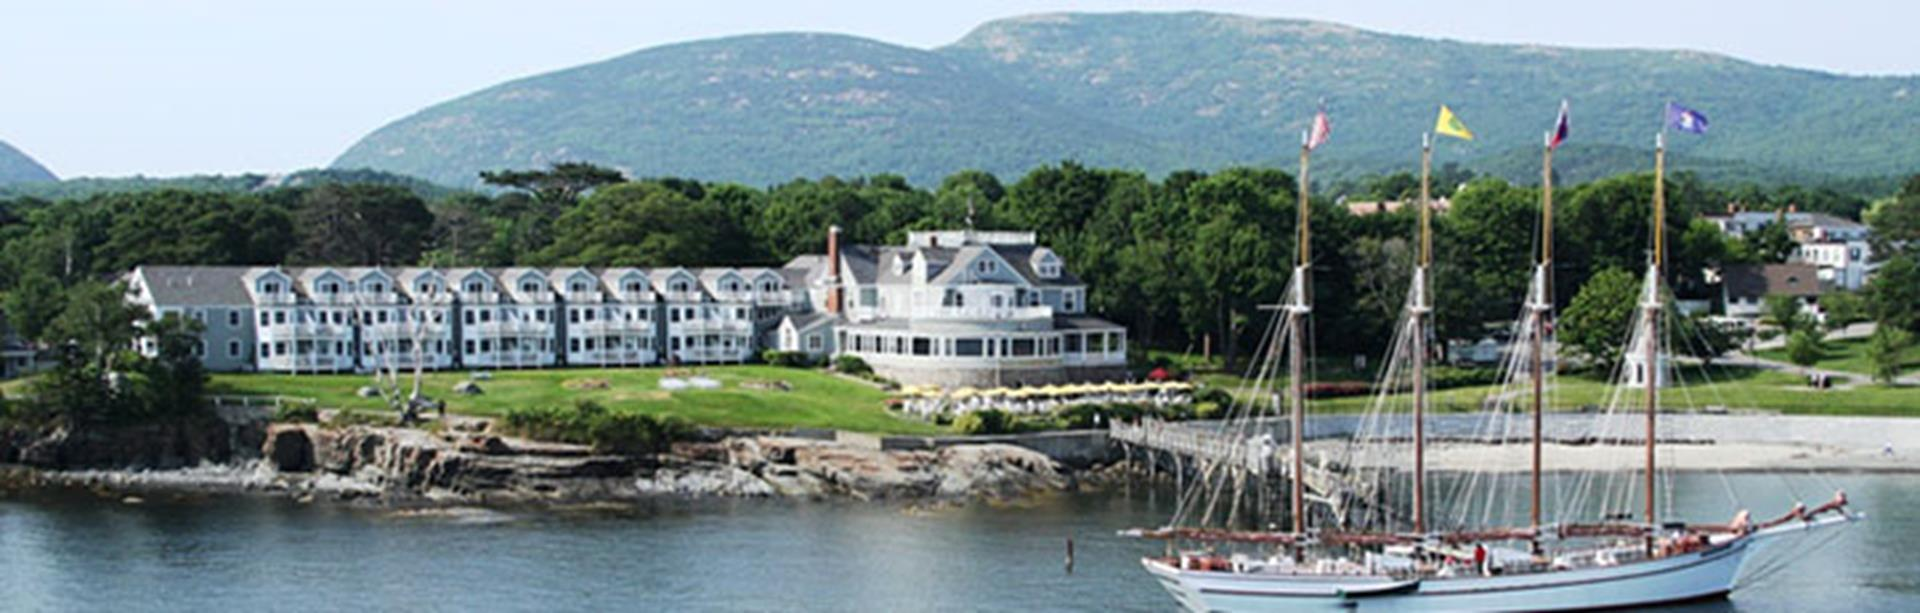 Exciting Reunions Await in Bar Harbor Inn & Spa